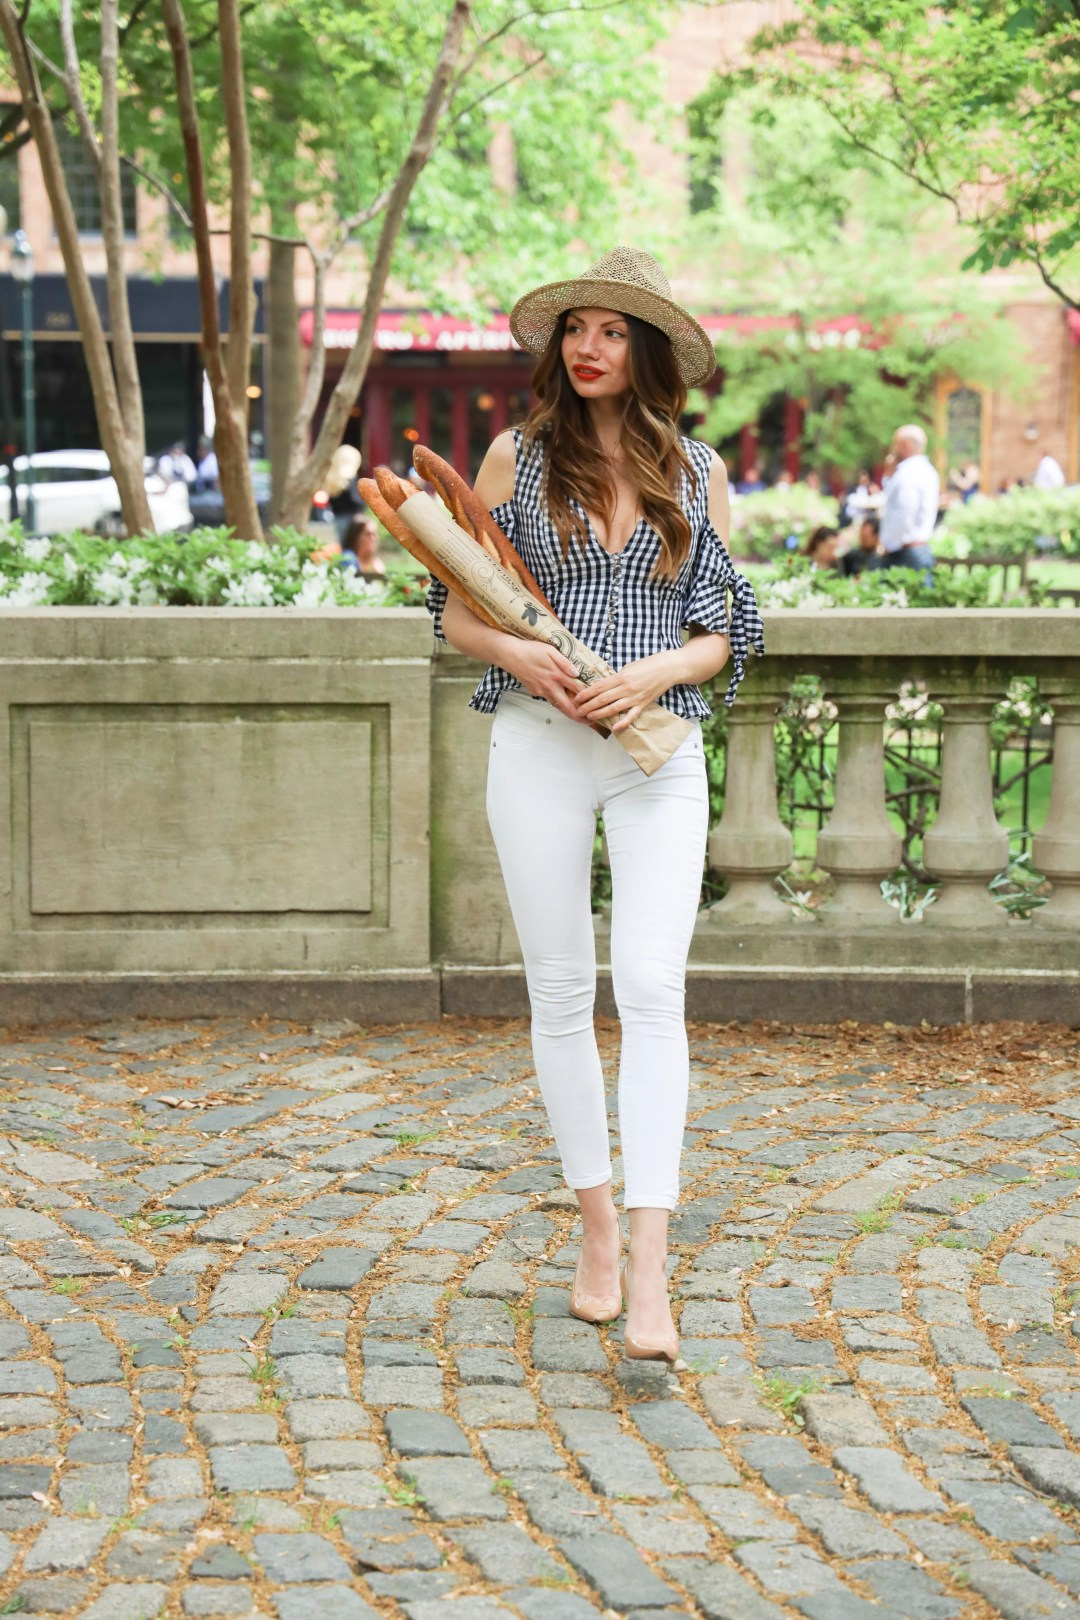 Lifestyle Blogger Chocolate and Lace shares her photoshoot at Parc Rittenhouse Square Philadelphia, PA.